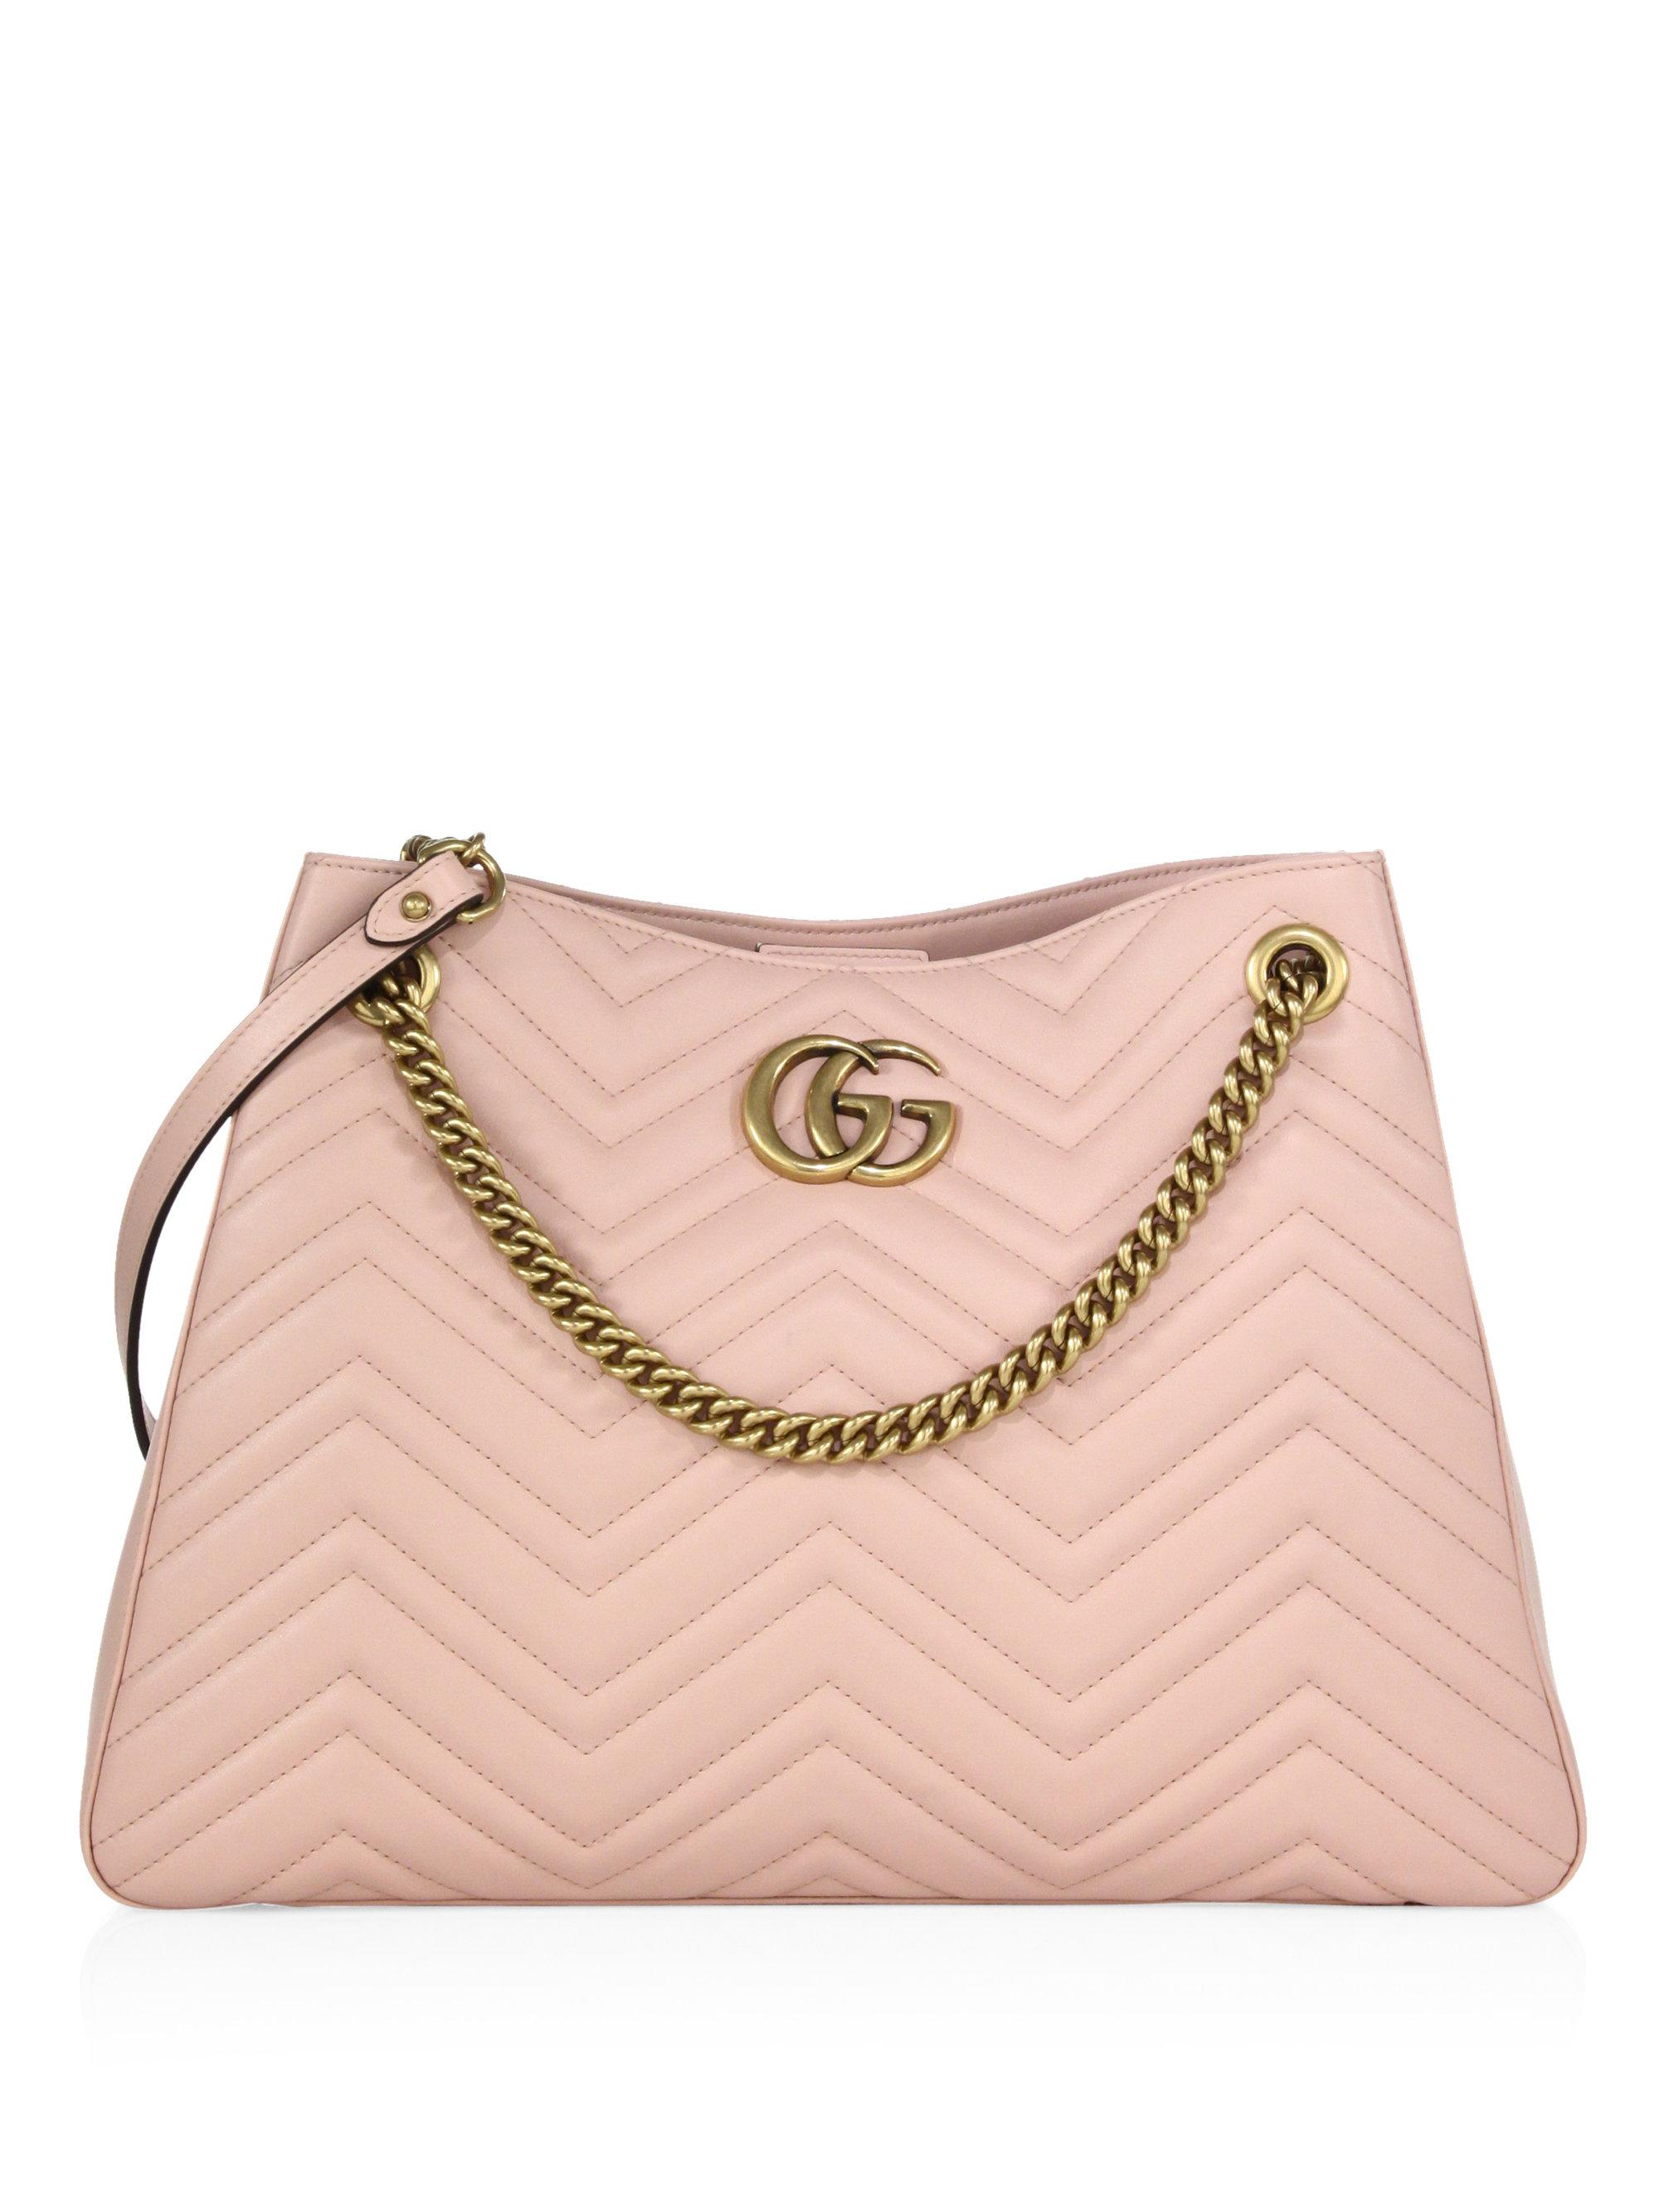 eb767b0cd Gucci Gg Marmont Matelasse Leather Shoulder Bag in Pink - Lyst